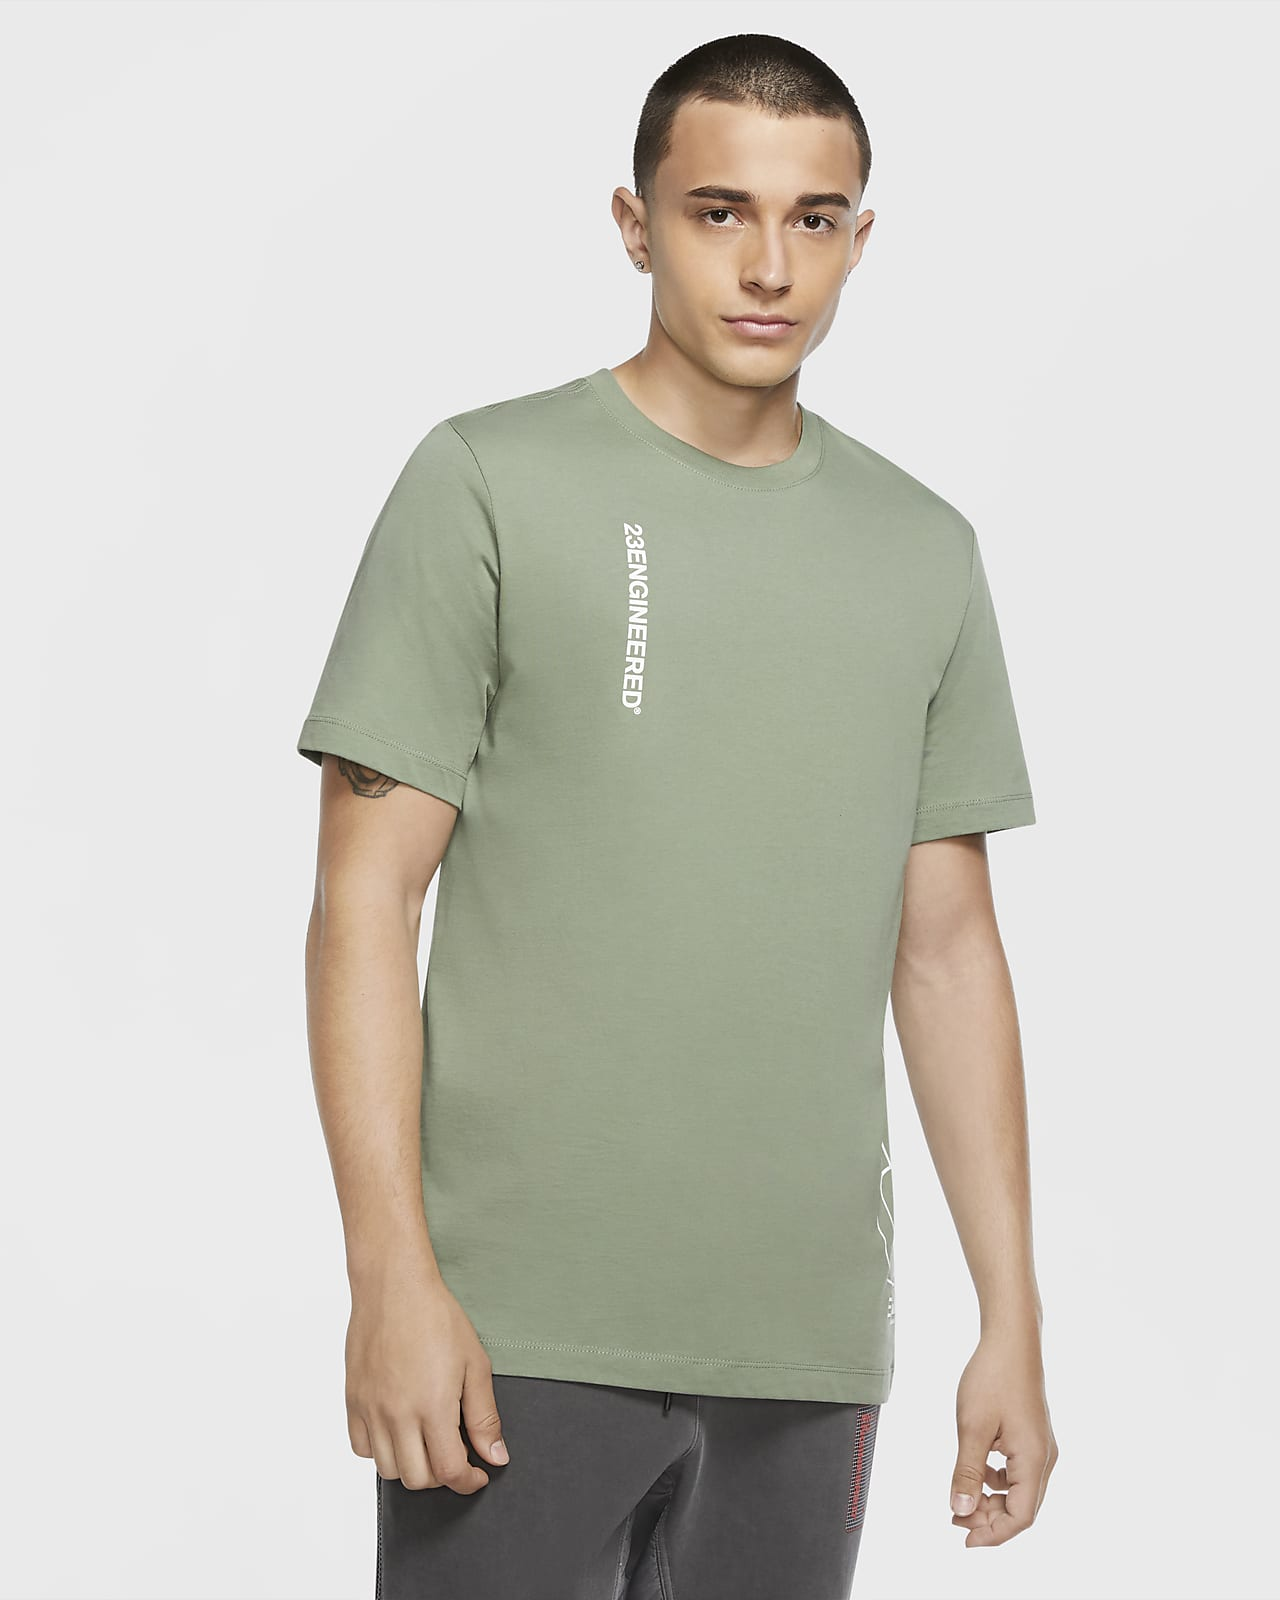 Jordan 23 Engineered Men's Short-Sleeve Crew